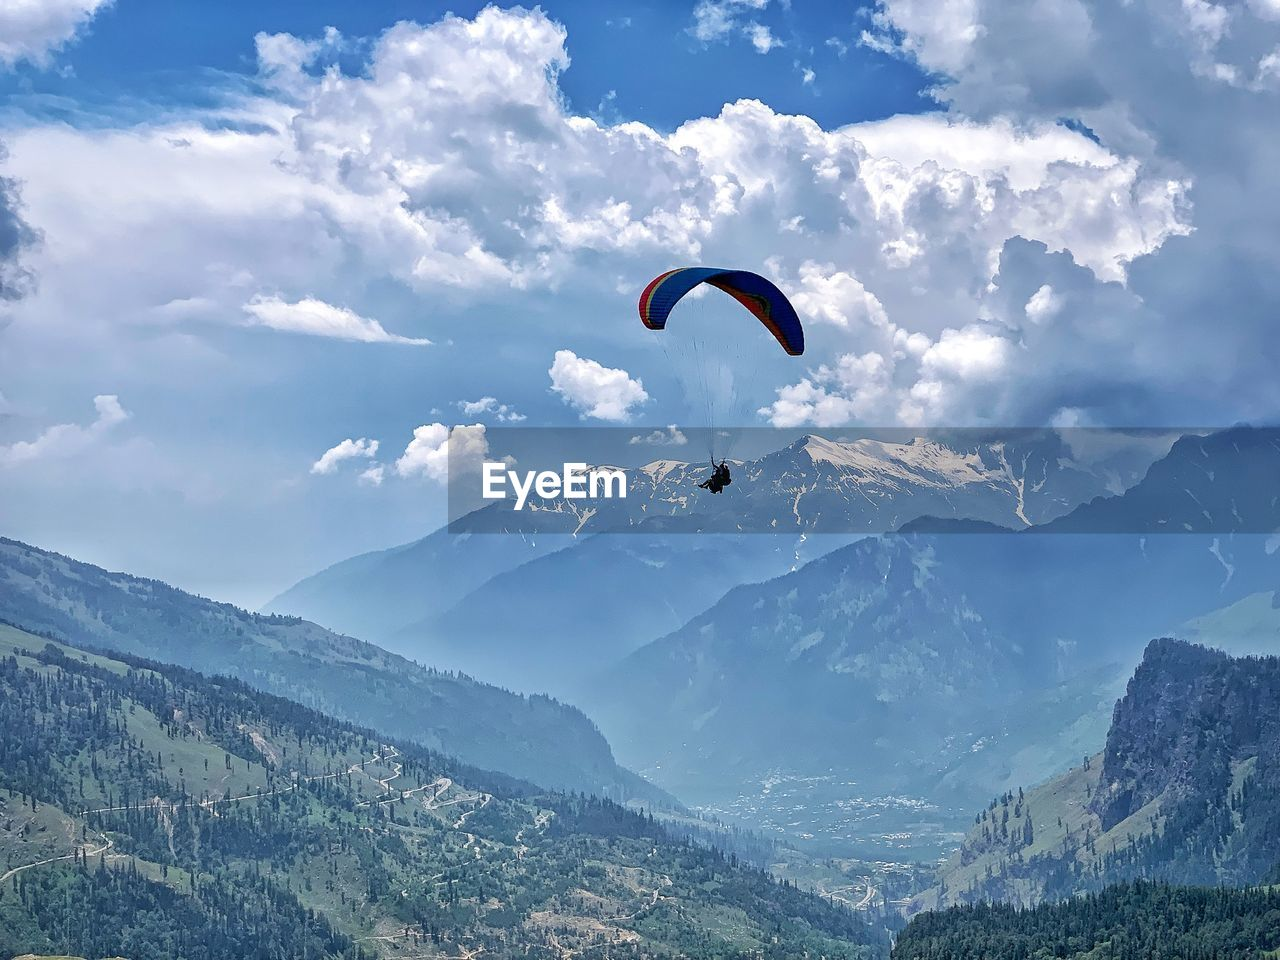 adventure, mountain, sport, extreme sports, parachute, paragliding, flying, beauty in nature, unrecognizable person, mid-air, leisure activity, sky, mountain range, scenics - nature, freedom, cloud - sky, day, real people, one person, lifestyles, outdoors